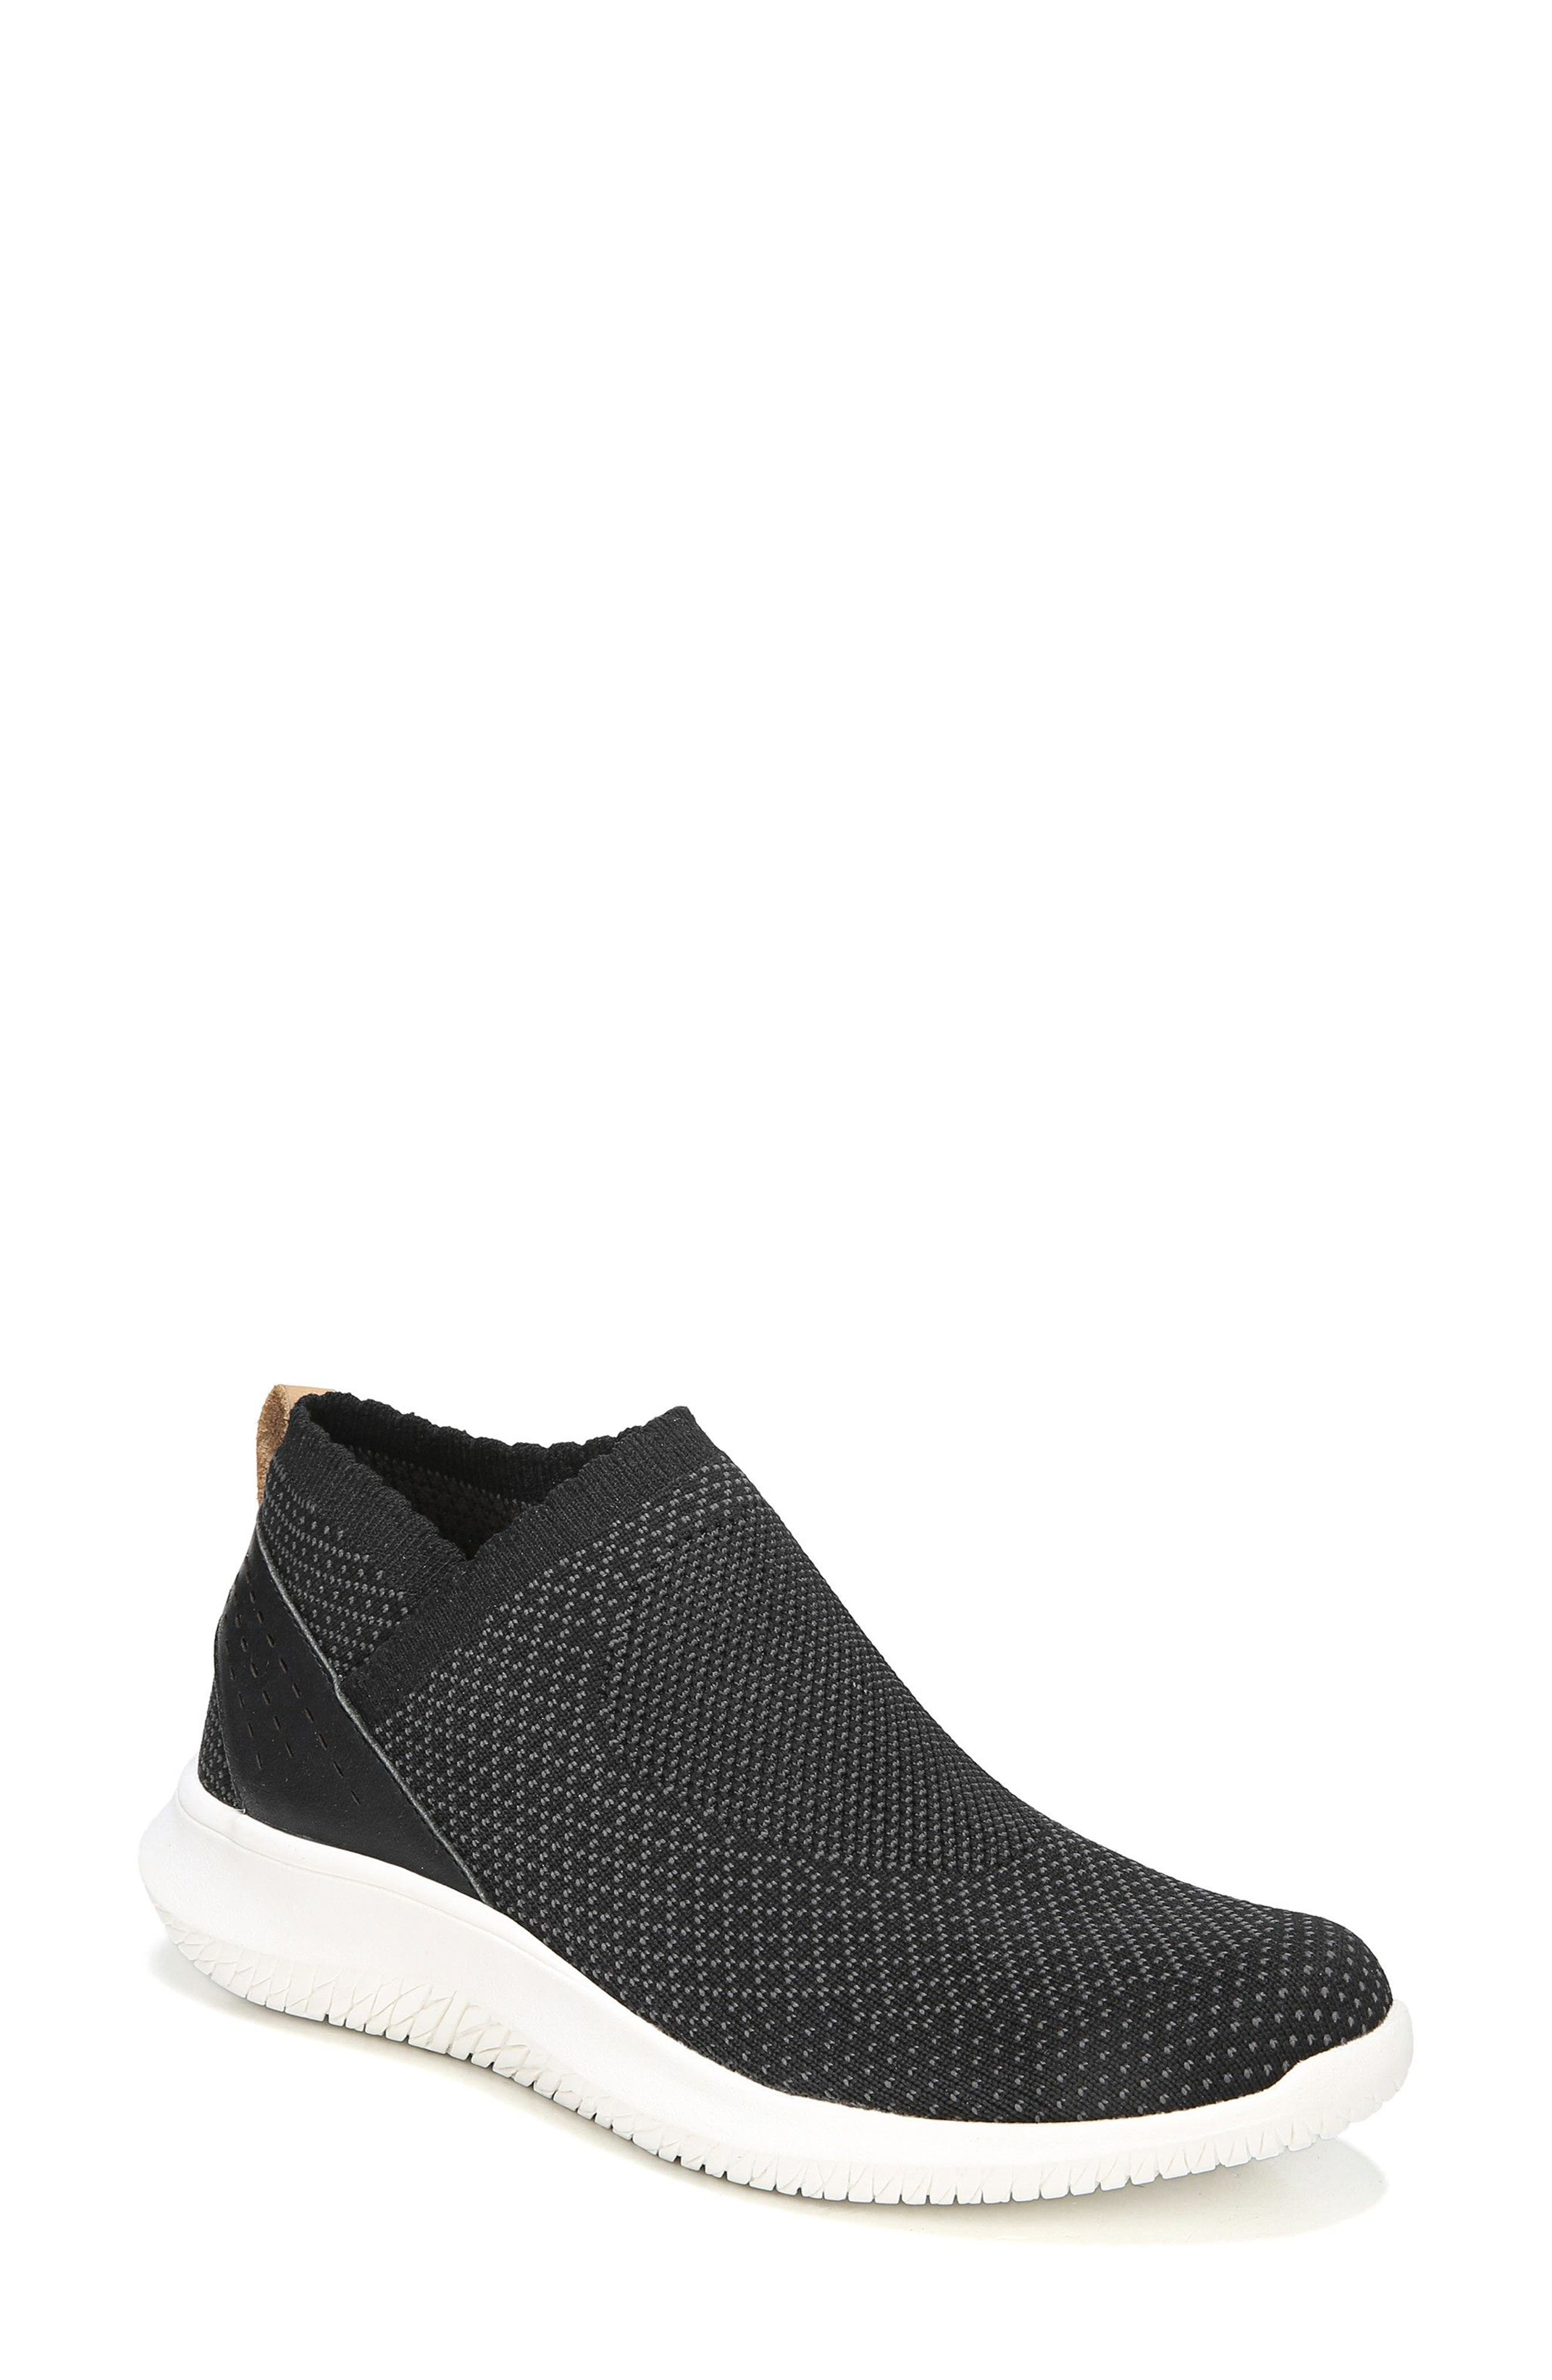 Fierce Knit Slip-On Sneaker,                         Main,                         color, Black Knit Fabric